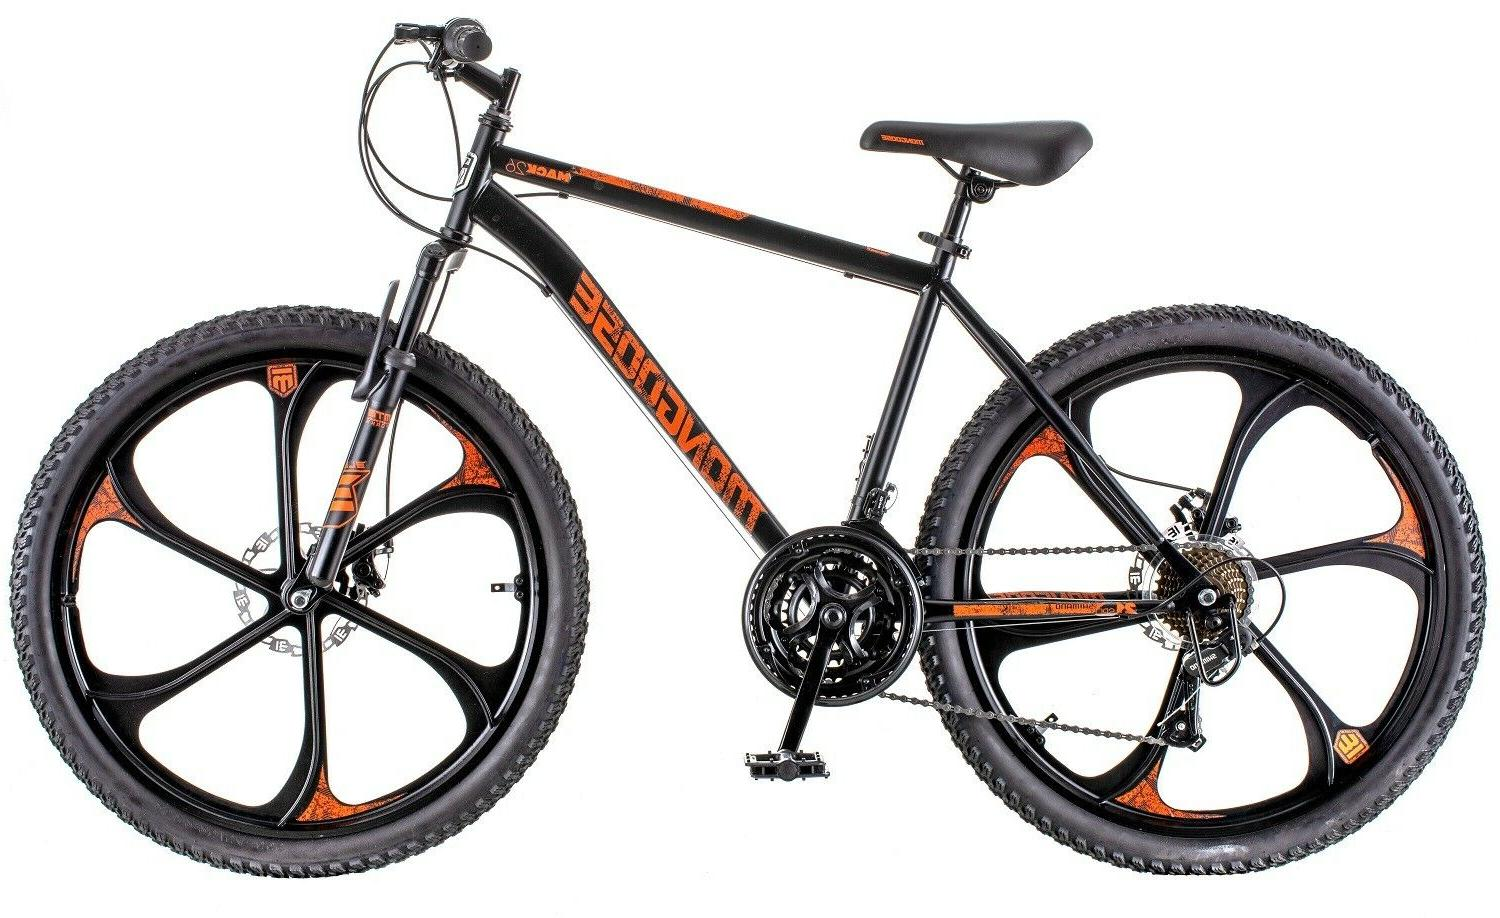 MENS MONGOOSE MACK26 21-SPEED STEEL BIKE -